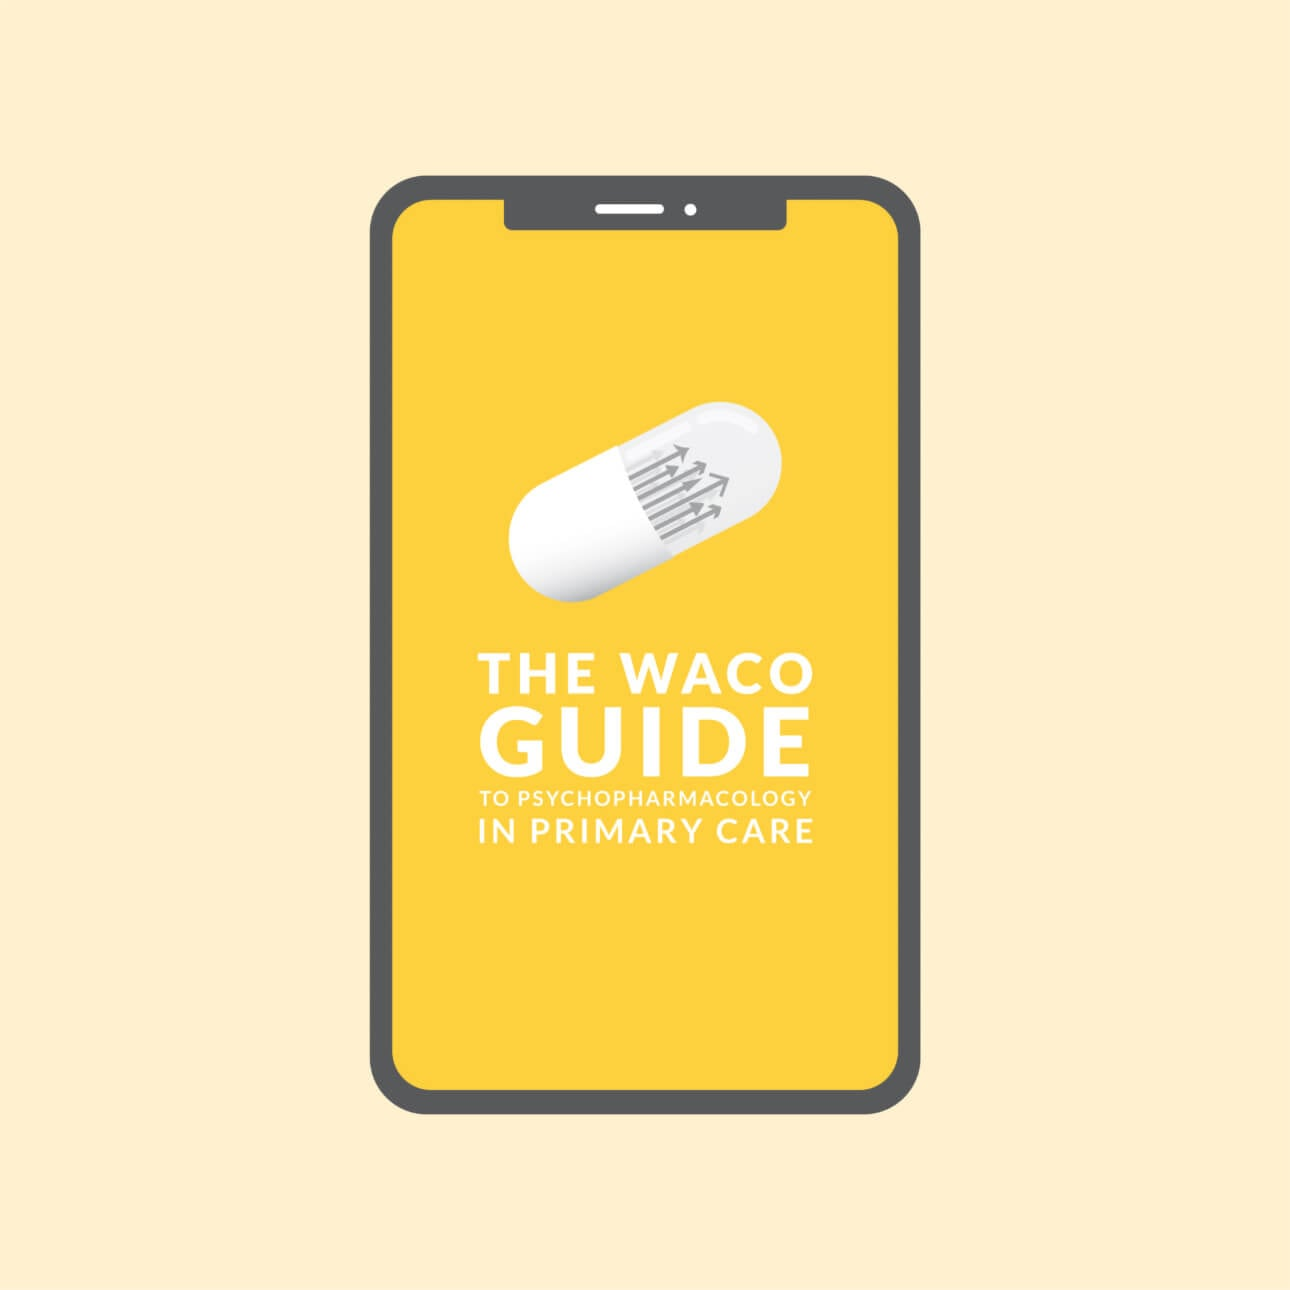 The Waco Guide to Psychopharmacology in Primary Care link inside a mobile phone.